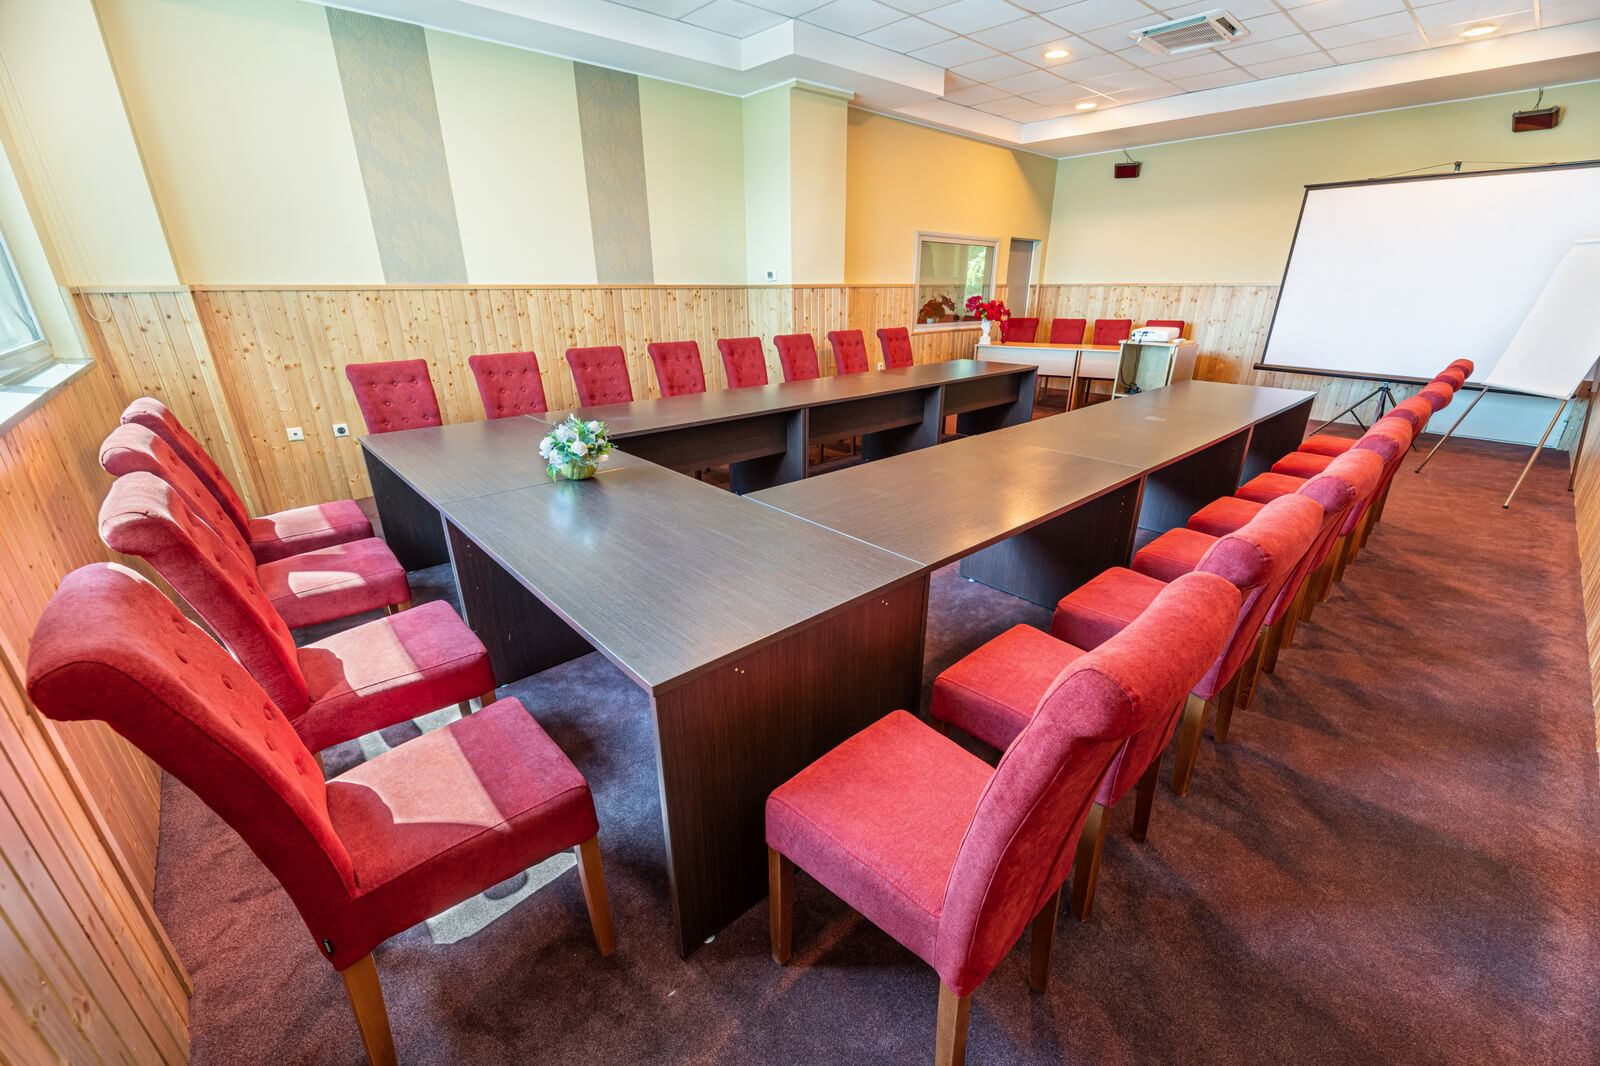 pegasus conference room 07